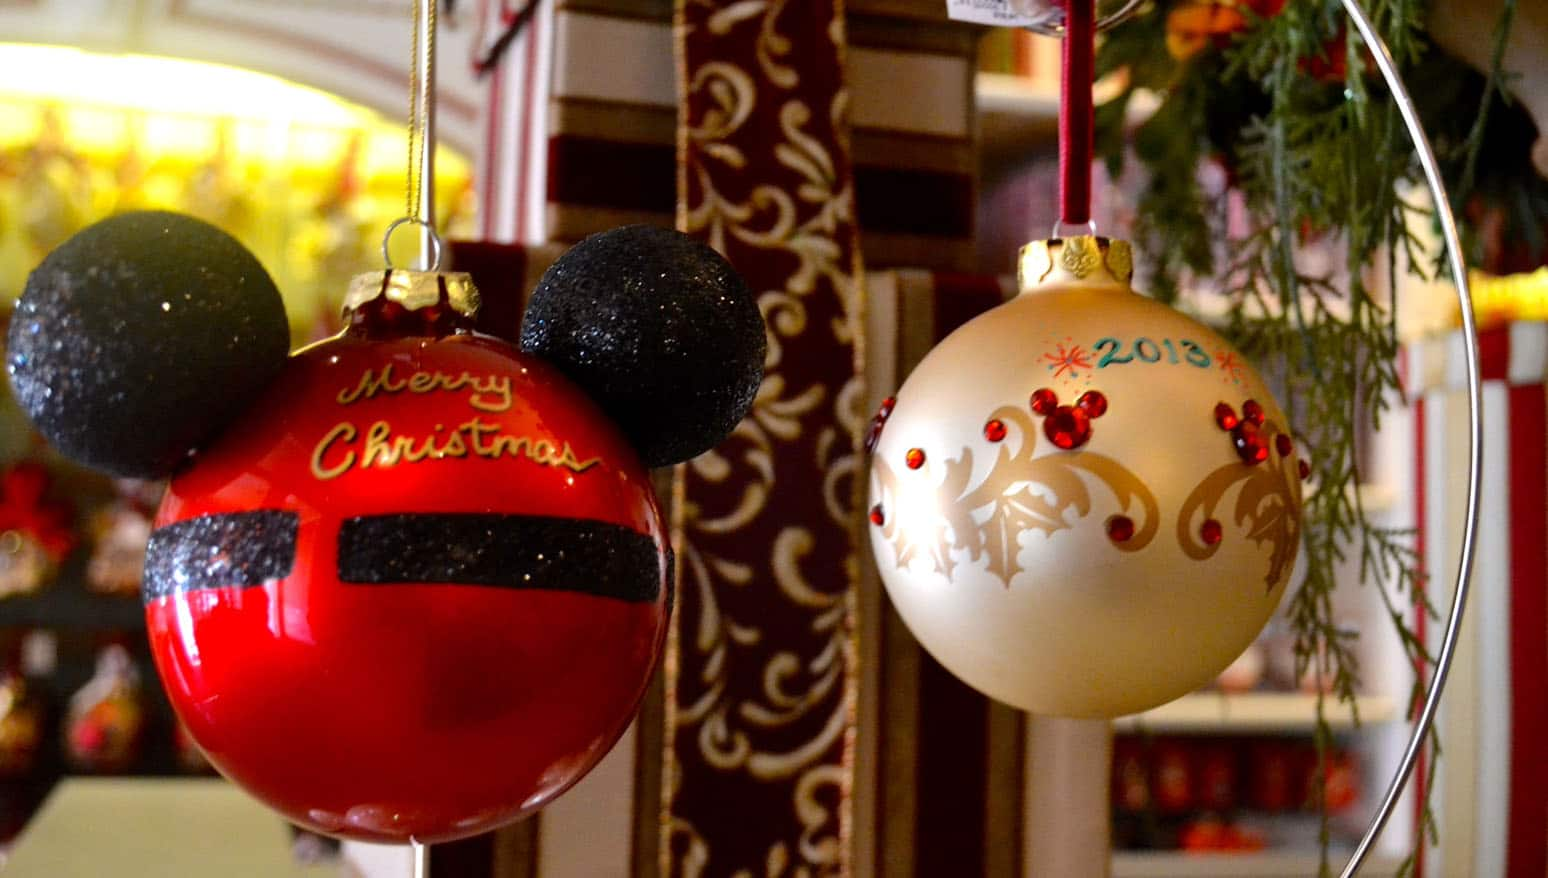 Adding A Personal Touch To The Holidays At The Disneyland Resort Disney Parks Blog